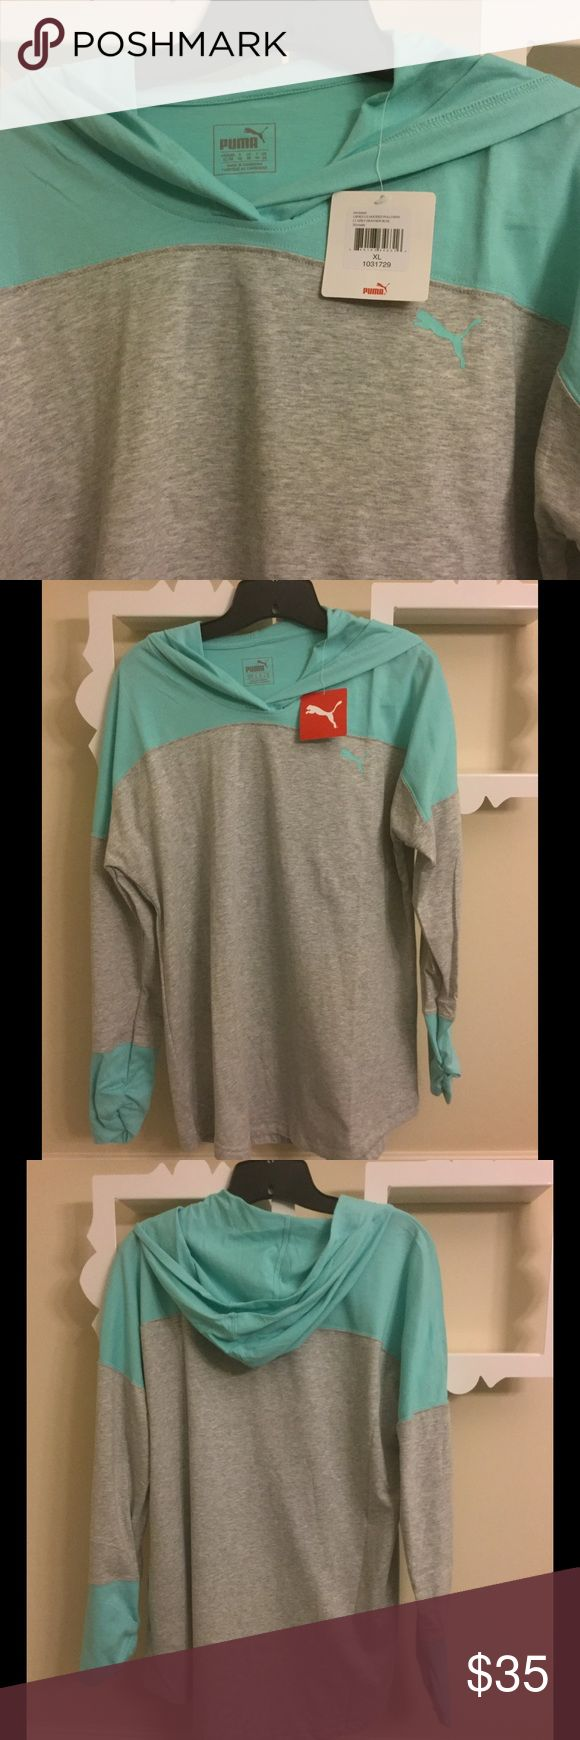 💝NWT PUMA hoodie/hooded pullover XL💝 Brand new, never worn Puma sweatshirt with hood/hooded pullover. Light heather gray and pretty blue. XL. Puma Tops Sweatshirts & Hoodies